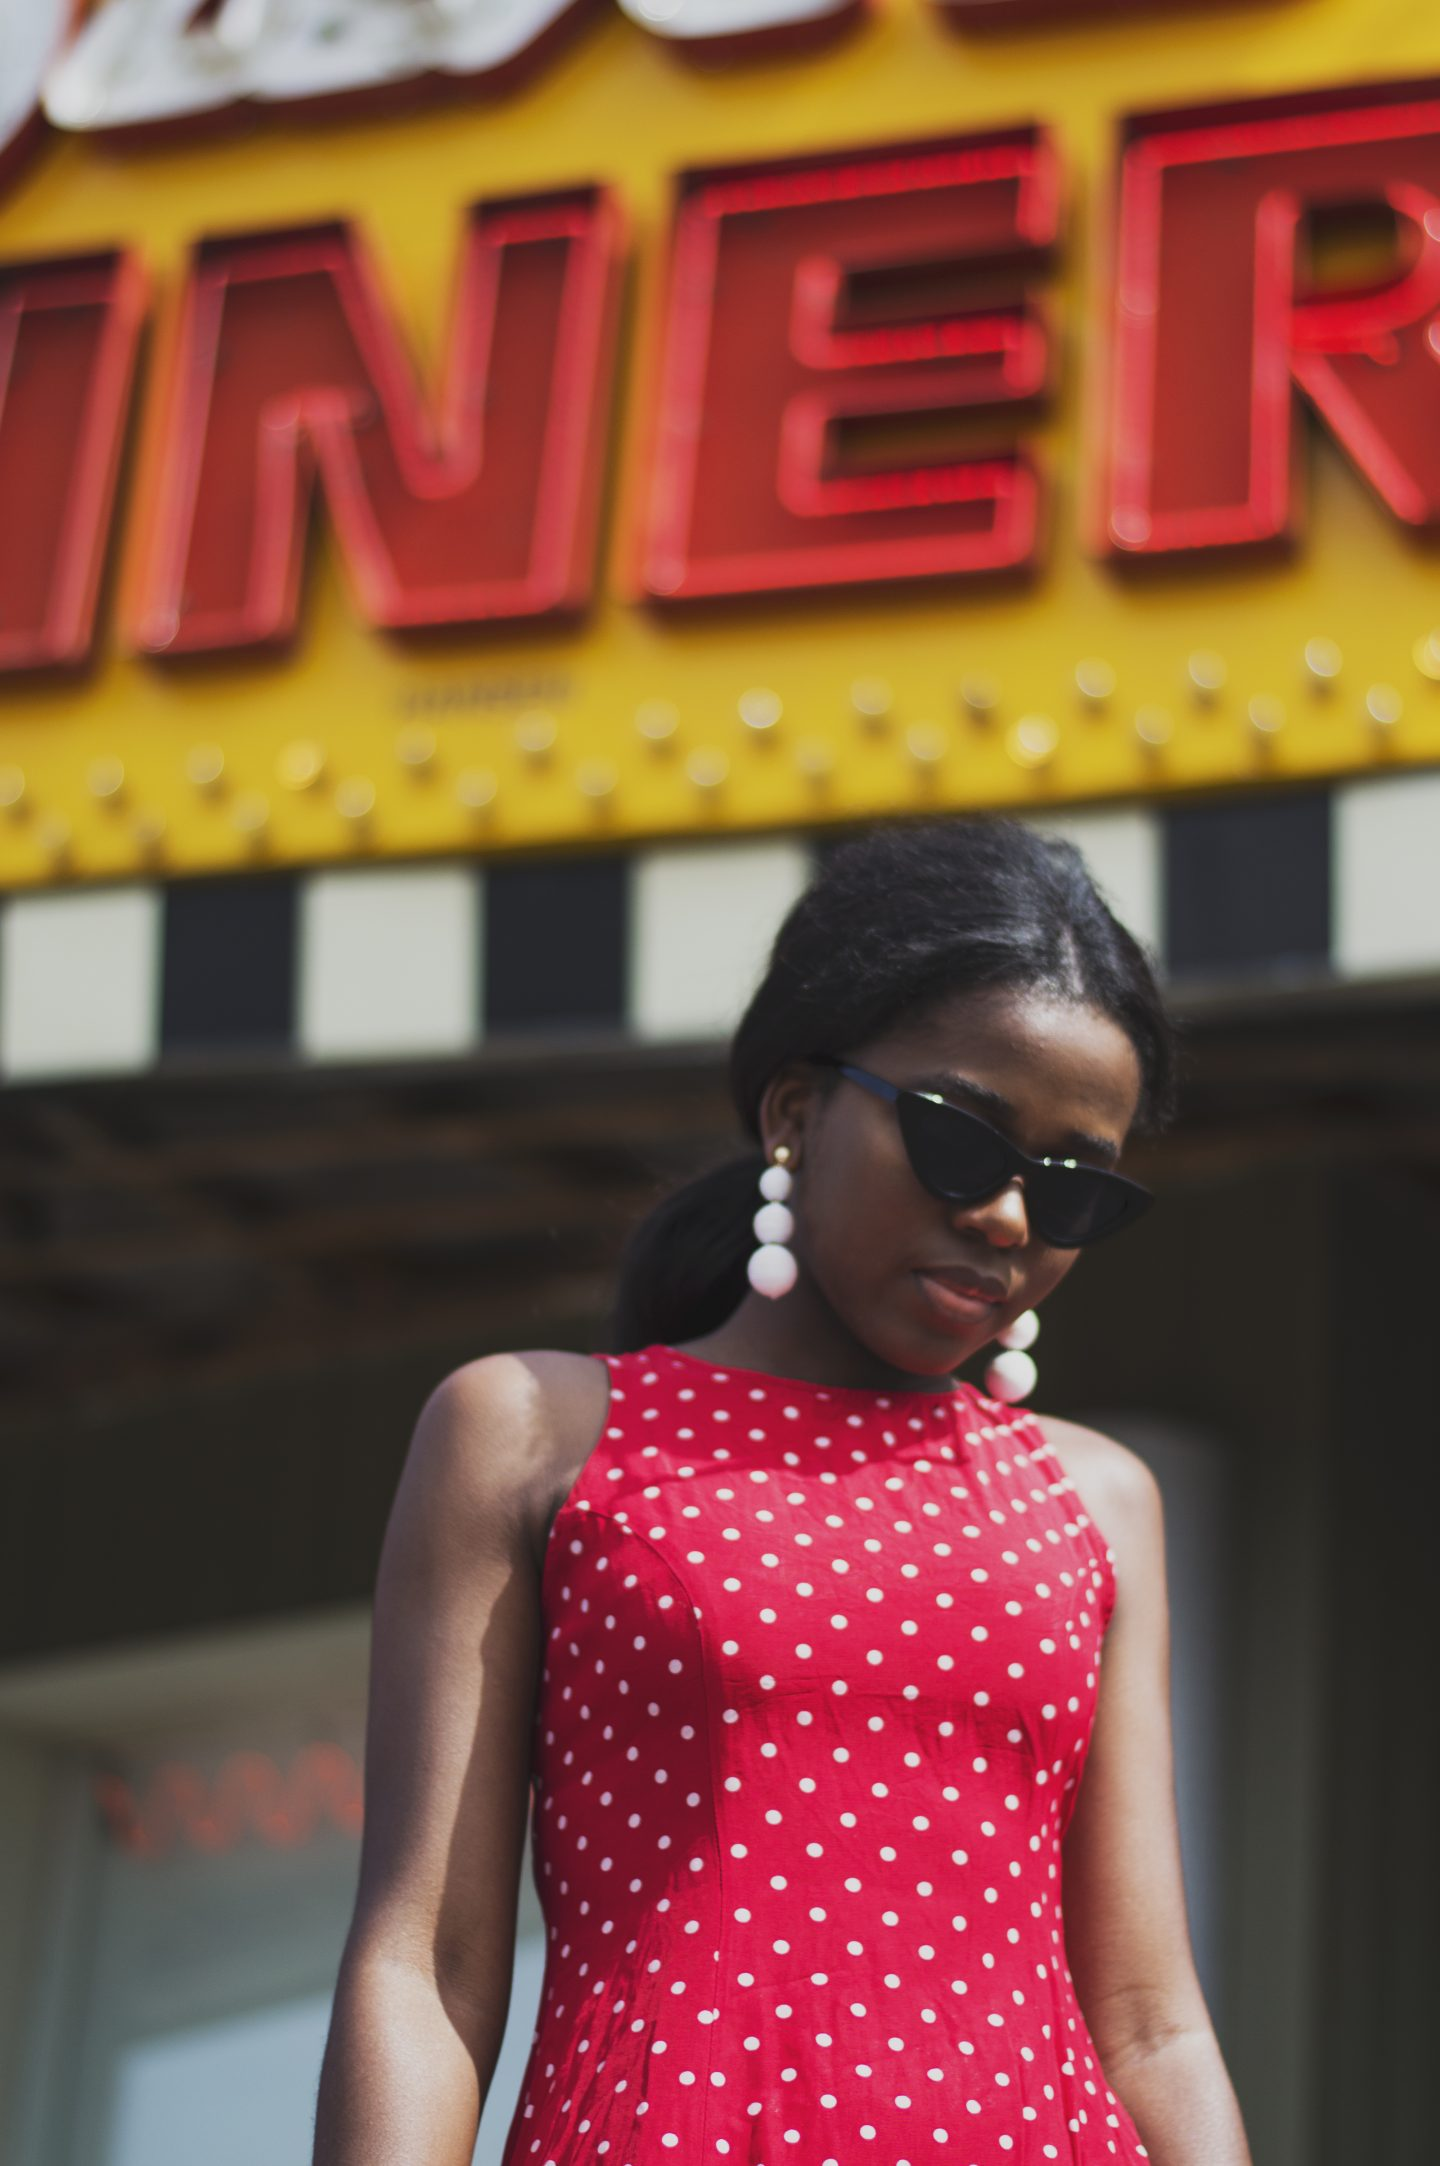 dress polka dot dress, 50s fashion, diner photoshoot,